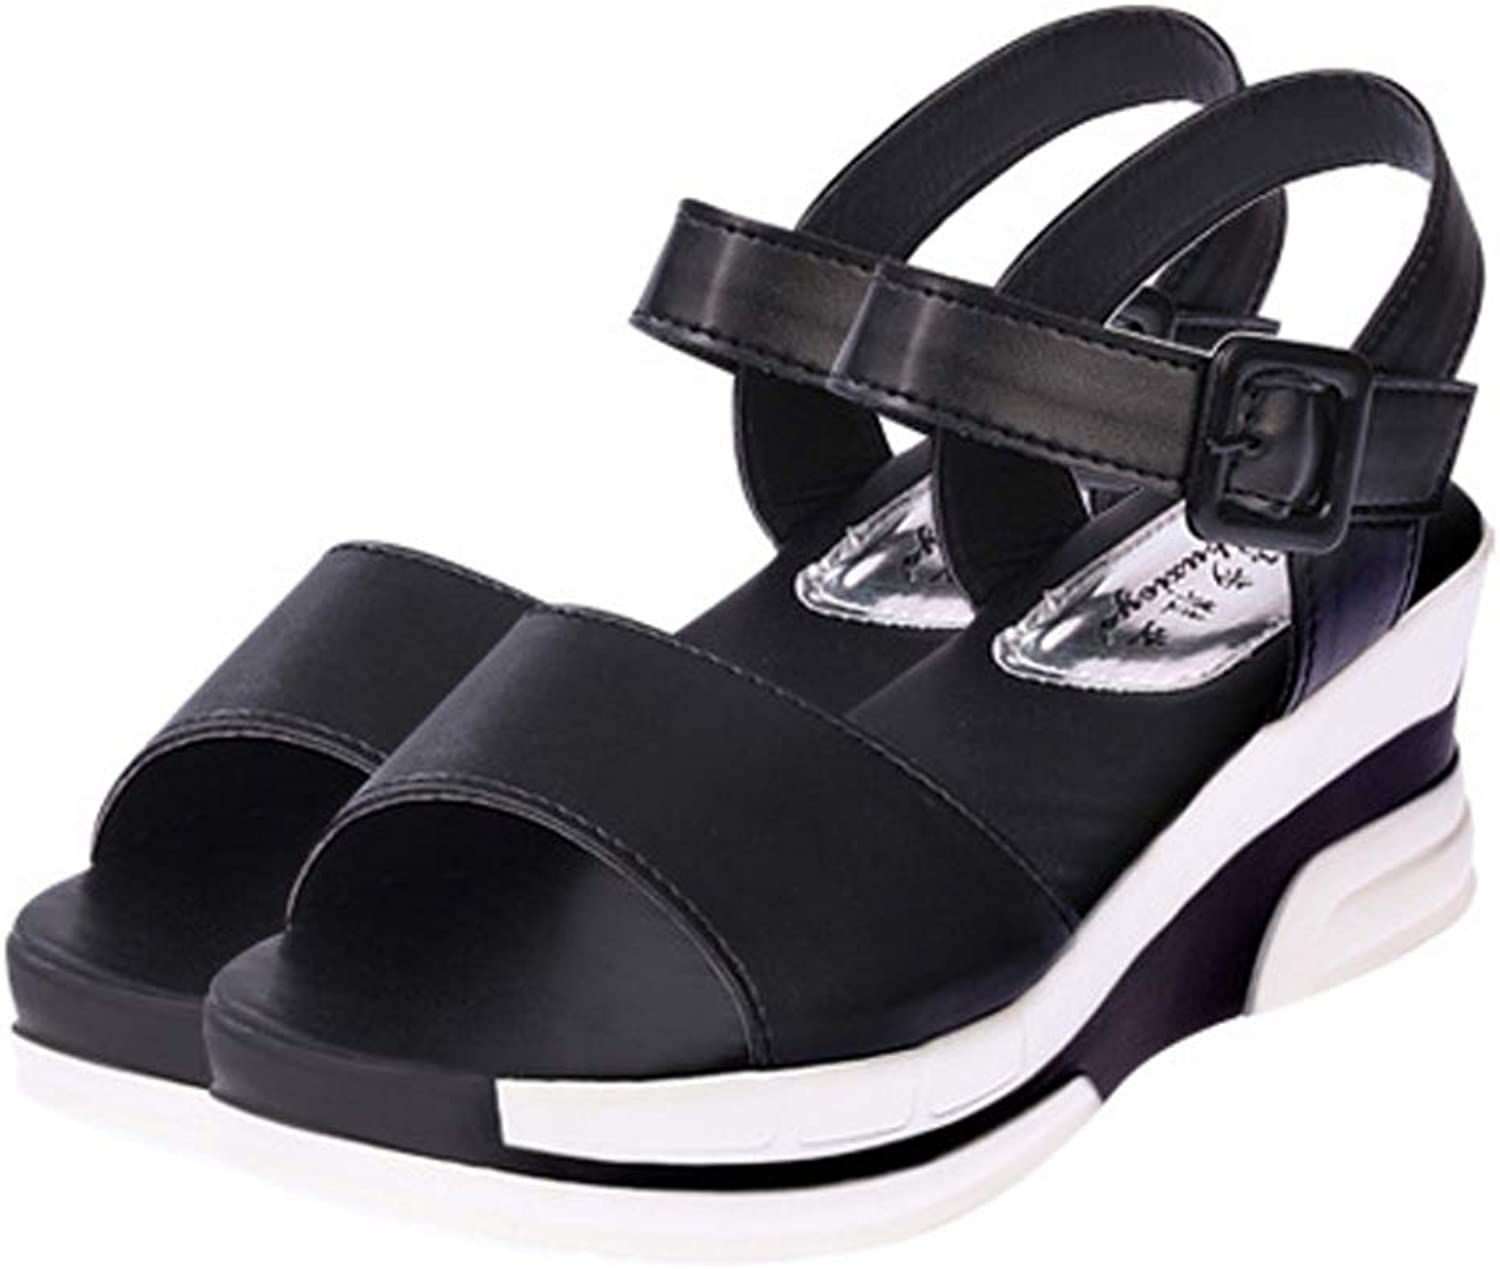 T-JULY Women's Wedge Sandal Fashion Summer Waterproof Platform Fish Mouth Med Heel with Buckle Ladies shoes